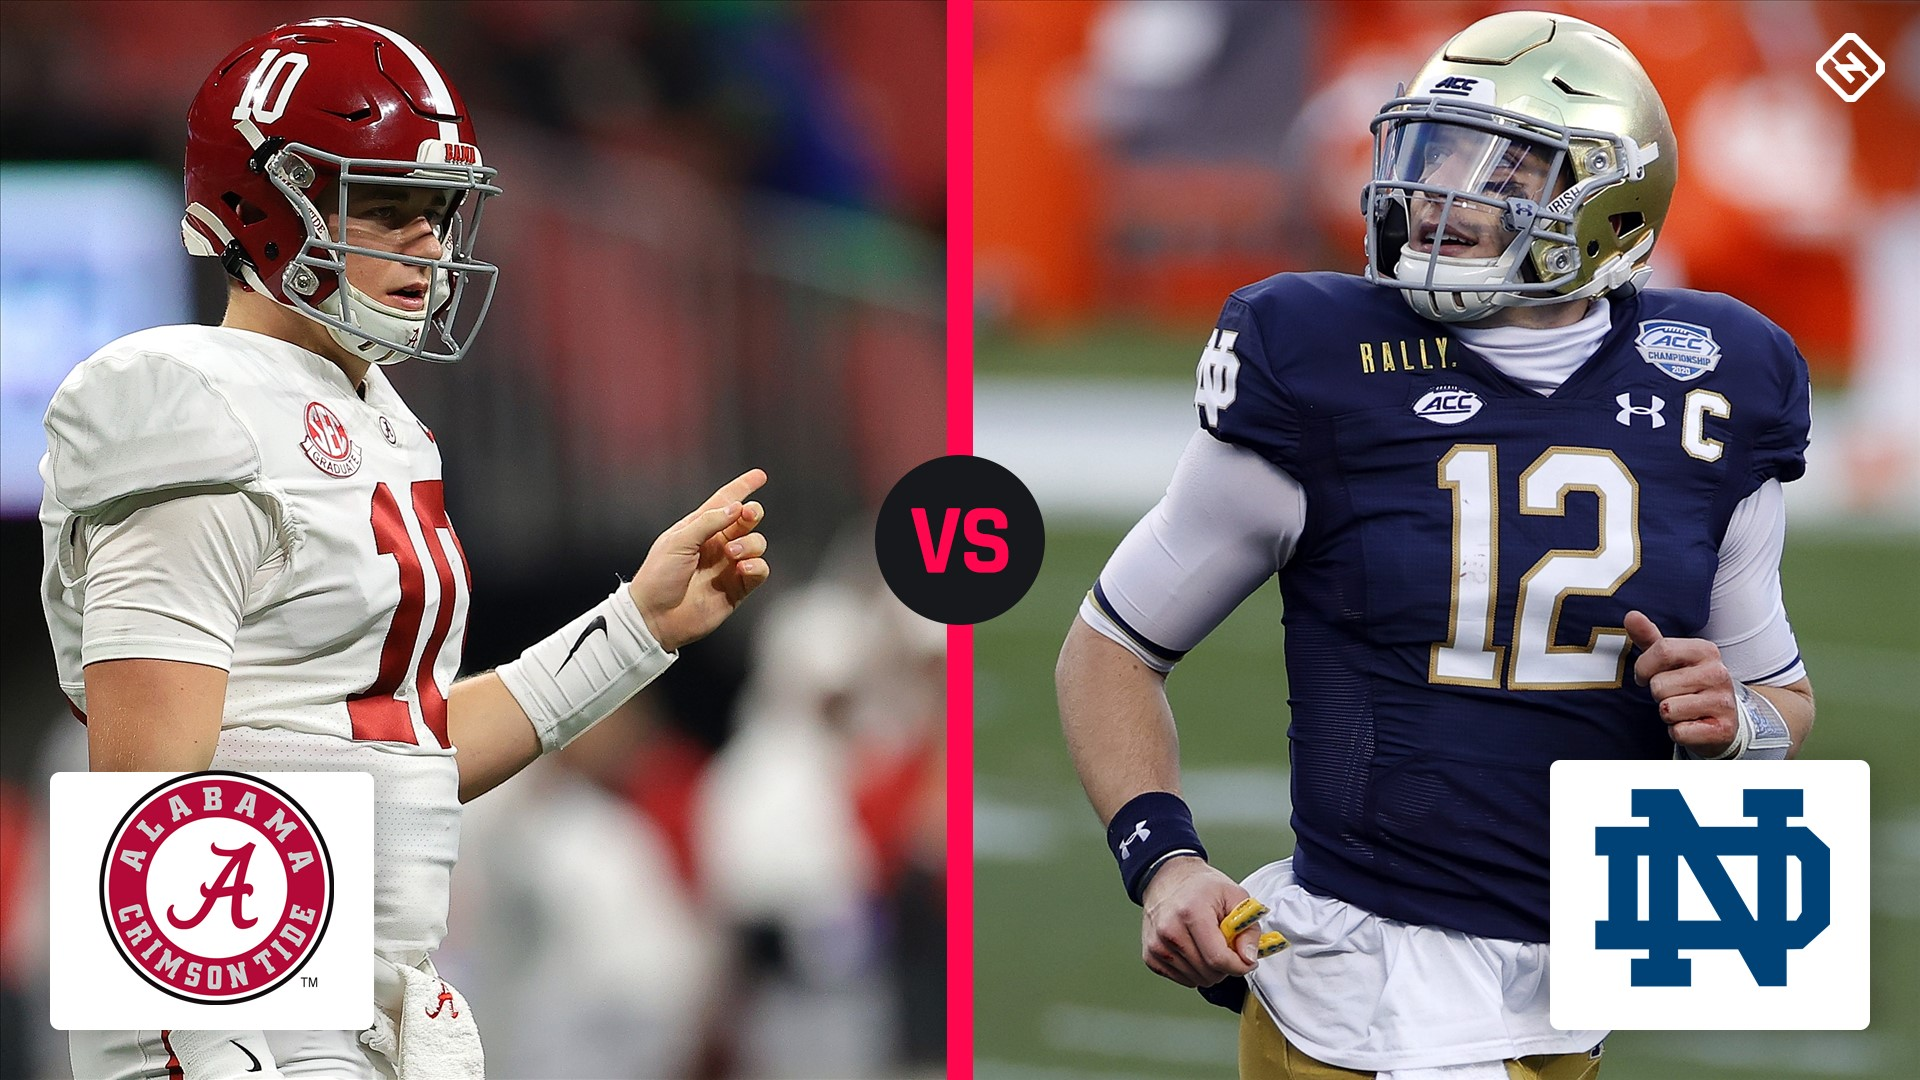 Alabama vs. Notre Dame live score, updates, highlights from College Football Playoff semifinal